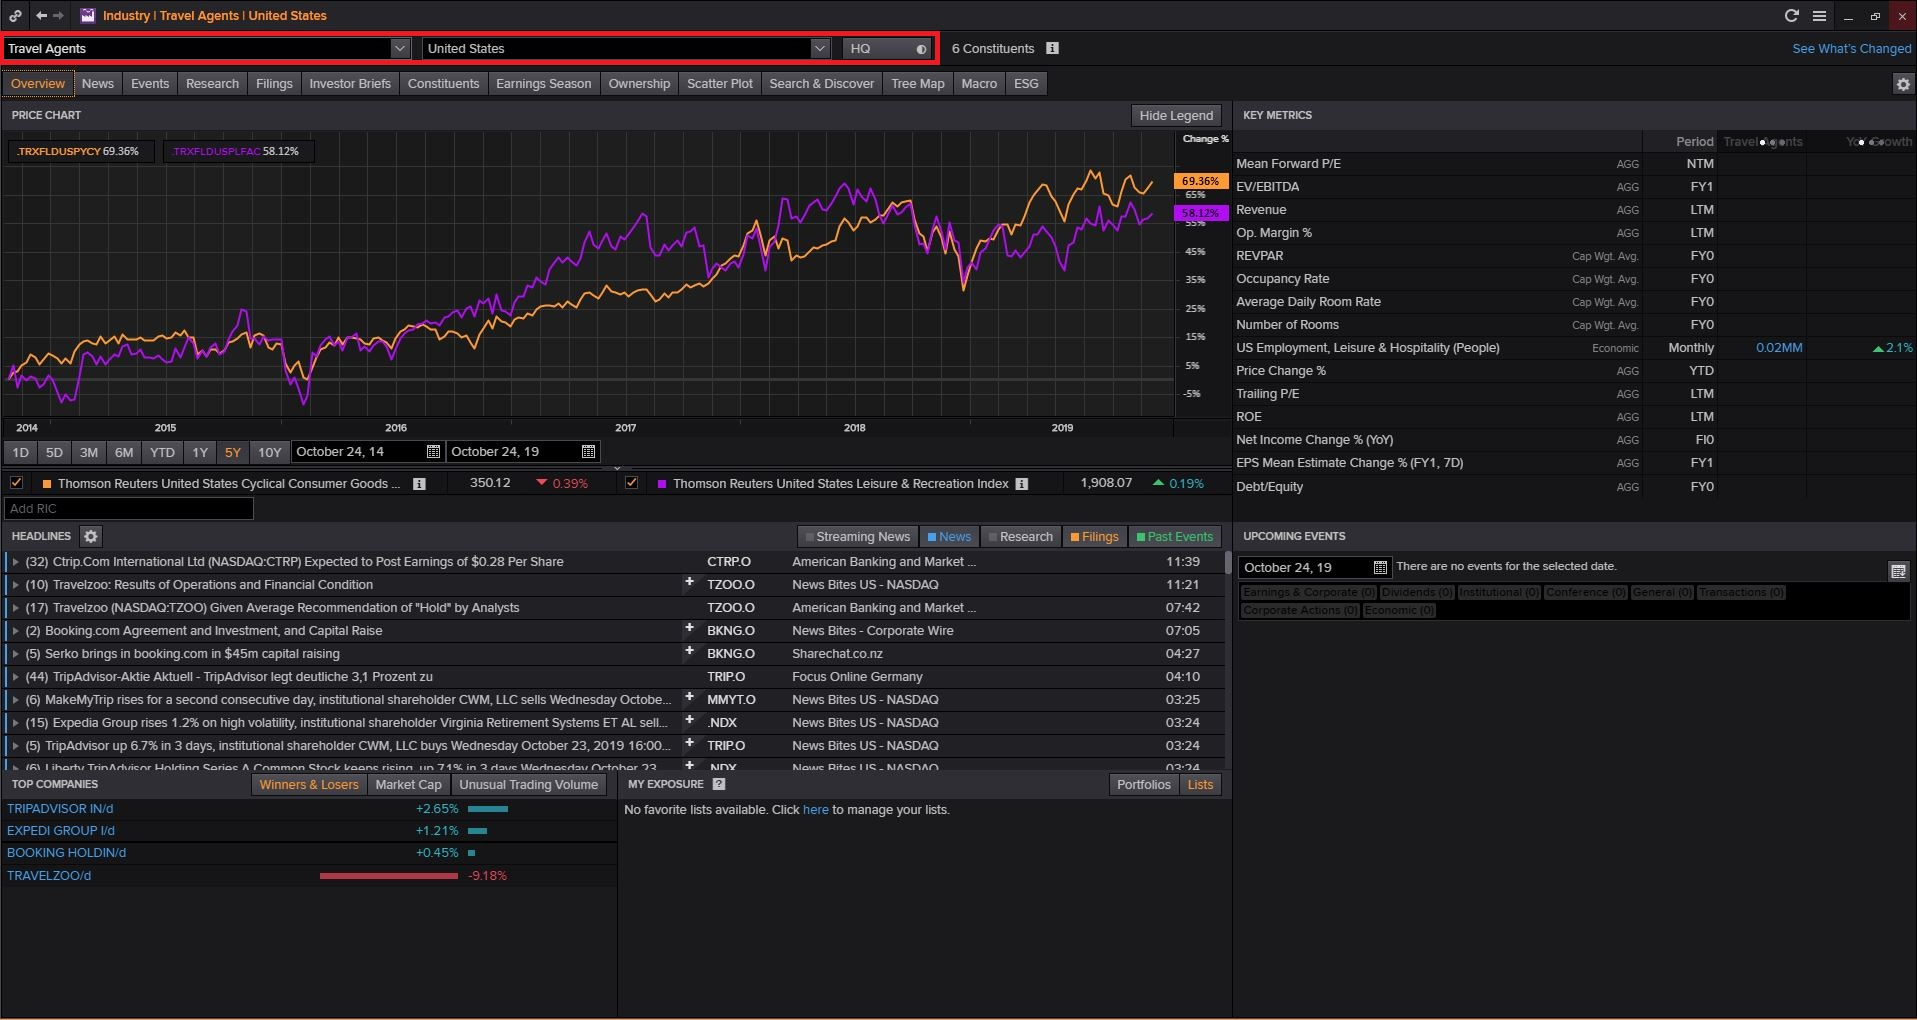 Login to Thomson Reuters Eikon (Available Only in Library) then Type INDUS and Search and Select Consumer Cyclicals and Select Cyclical Consumer Services and Click on Hotels & Entertainment Services and Select Travel Agents